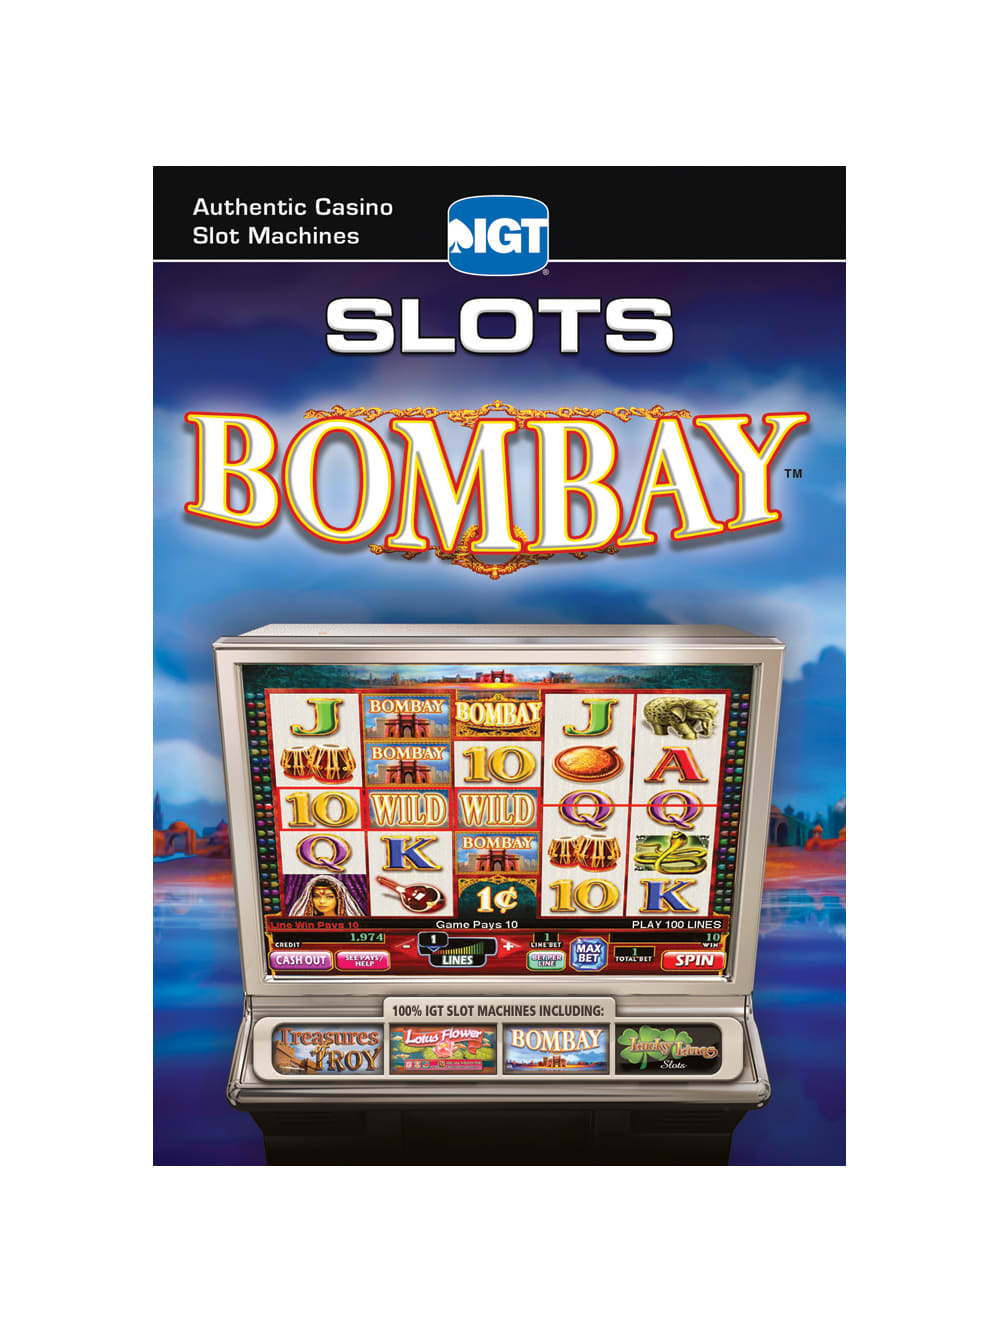 Igt slots software download how to create online casino business